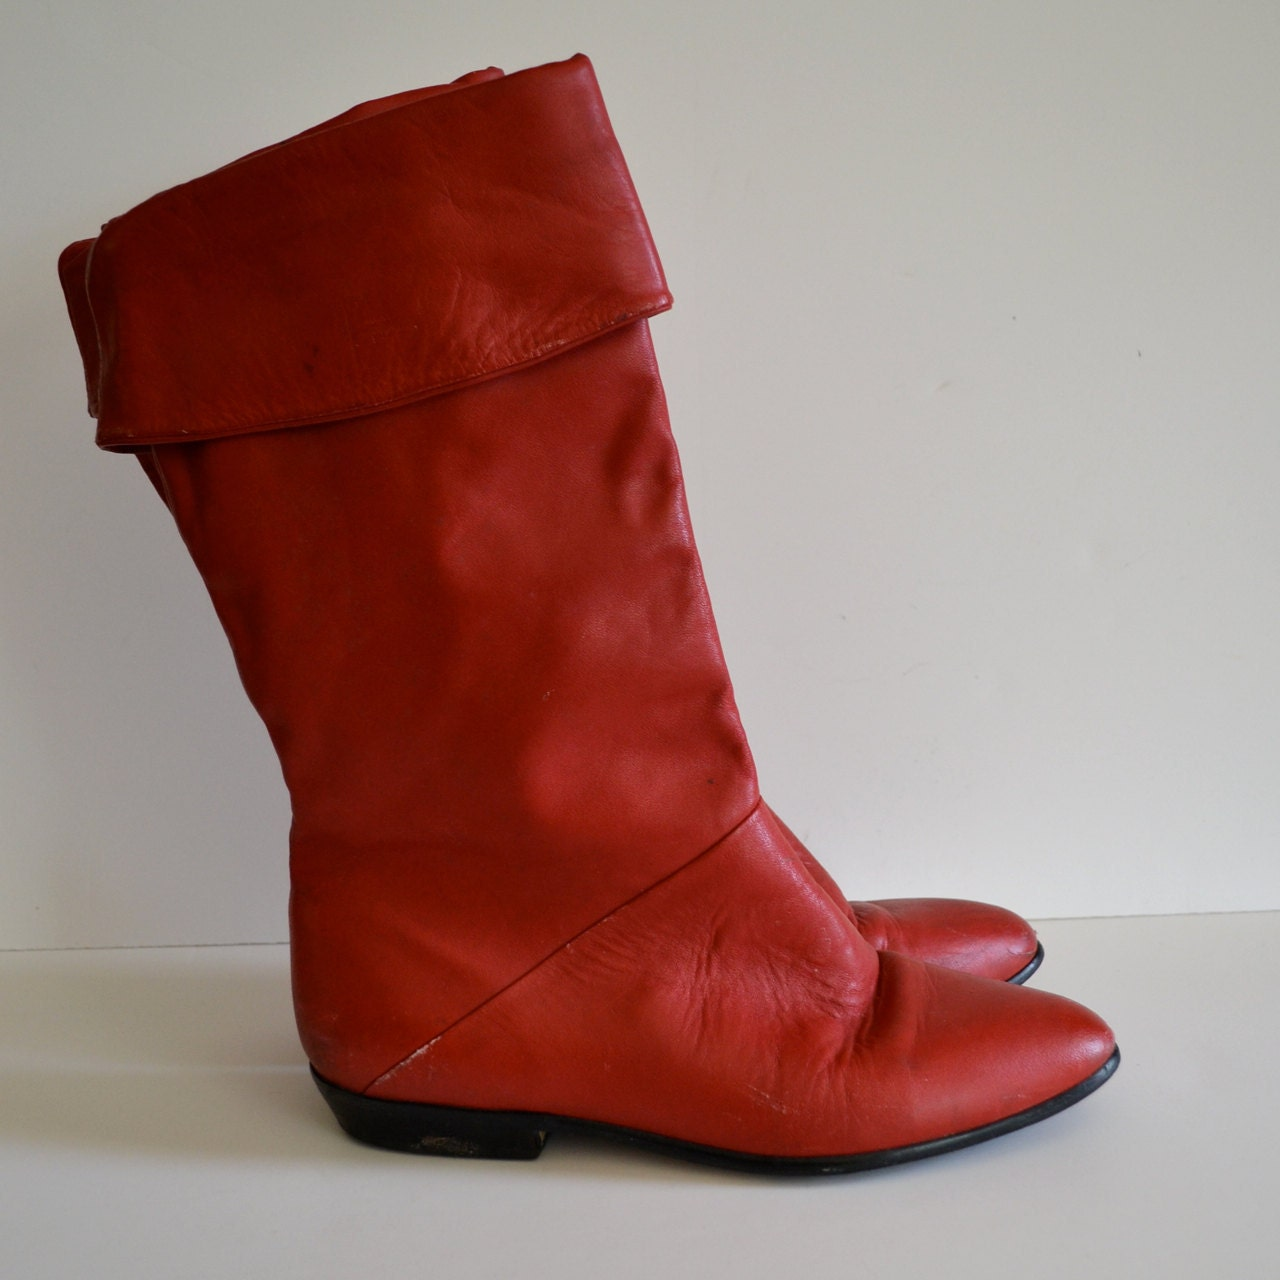 Shop for Boots Red at 24software.ml Next day delivery and free returns available. s of products online. Buy Boots Red now!